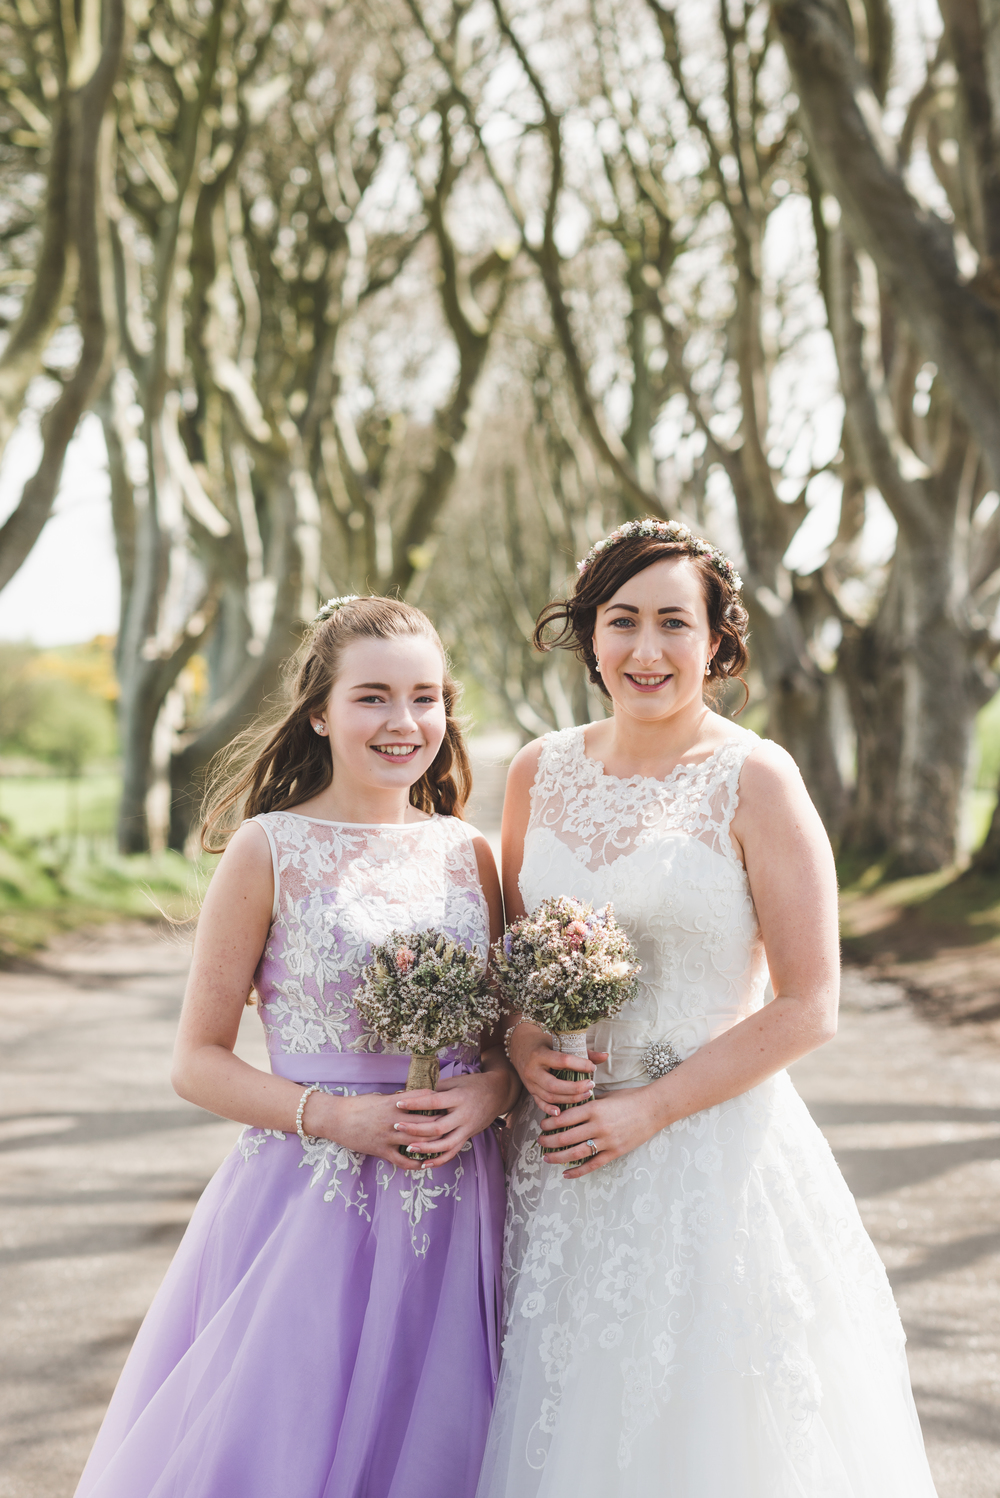 Northern_Ireland_Wedding_Photographer_Pure_Photo_NI_Shauna_Lewis_The_Dark_Hedges_bride_bridesmaid